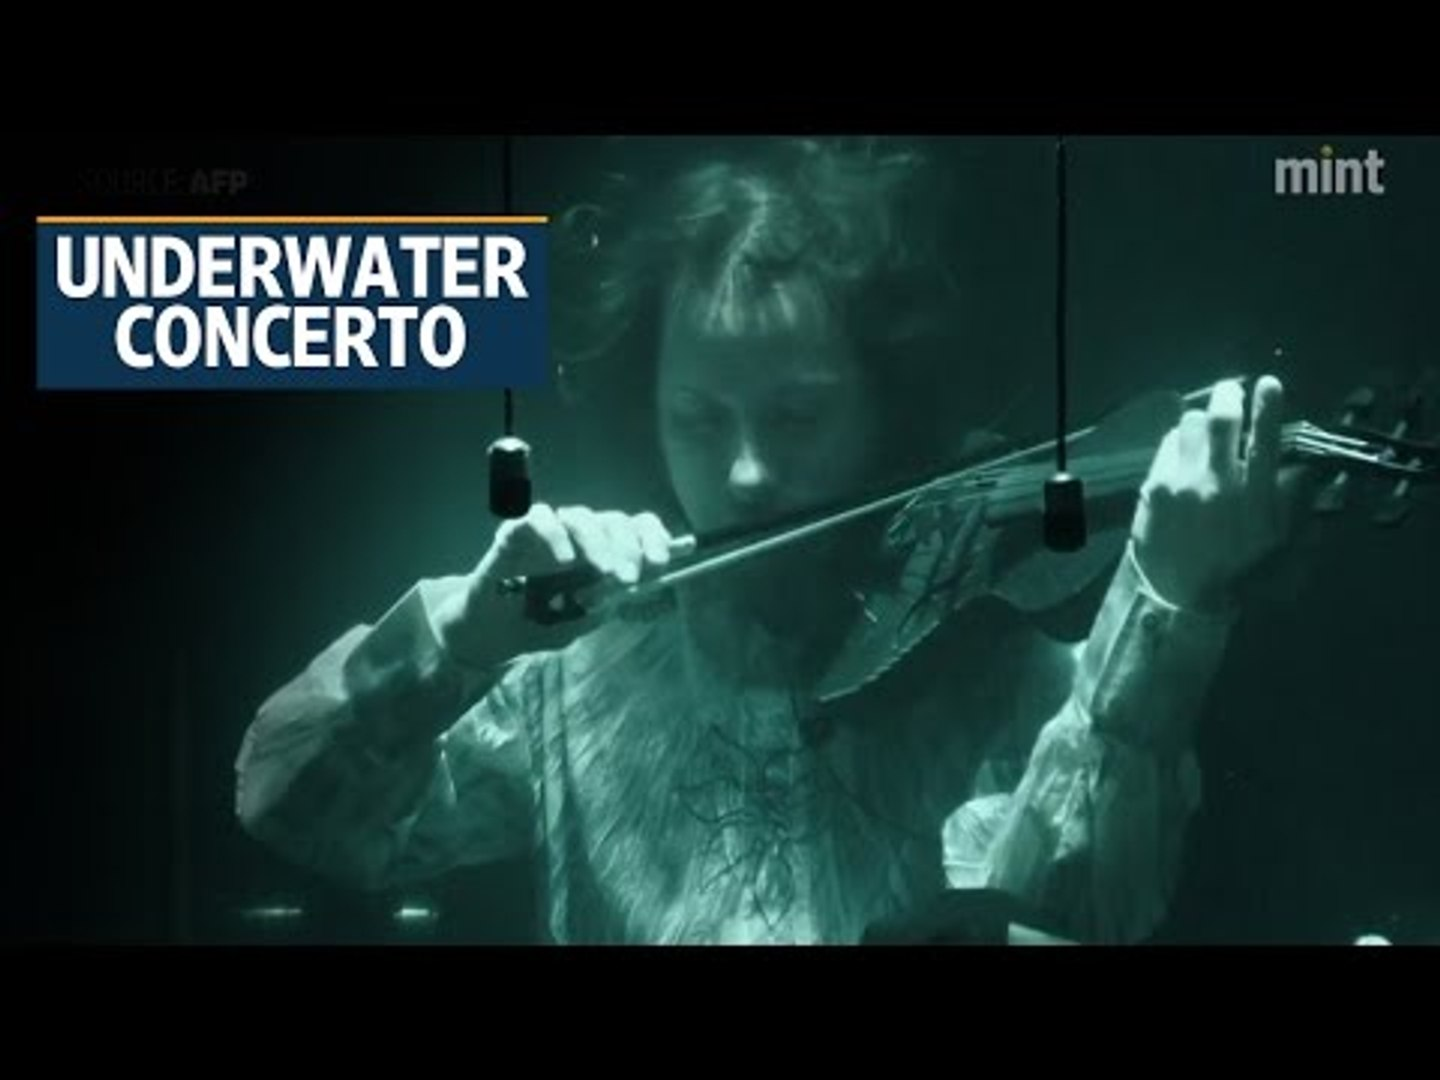 Innovative Danish musicians push boundaries with underwater show